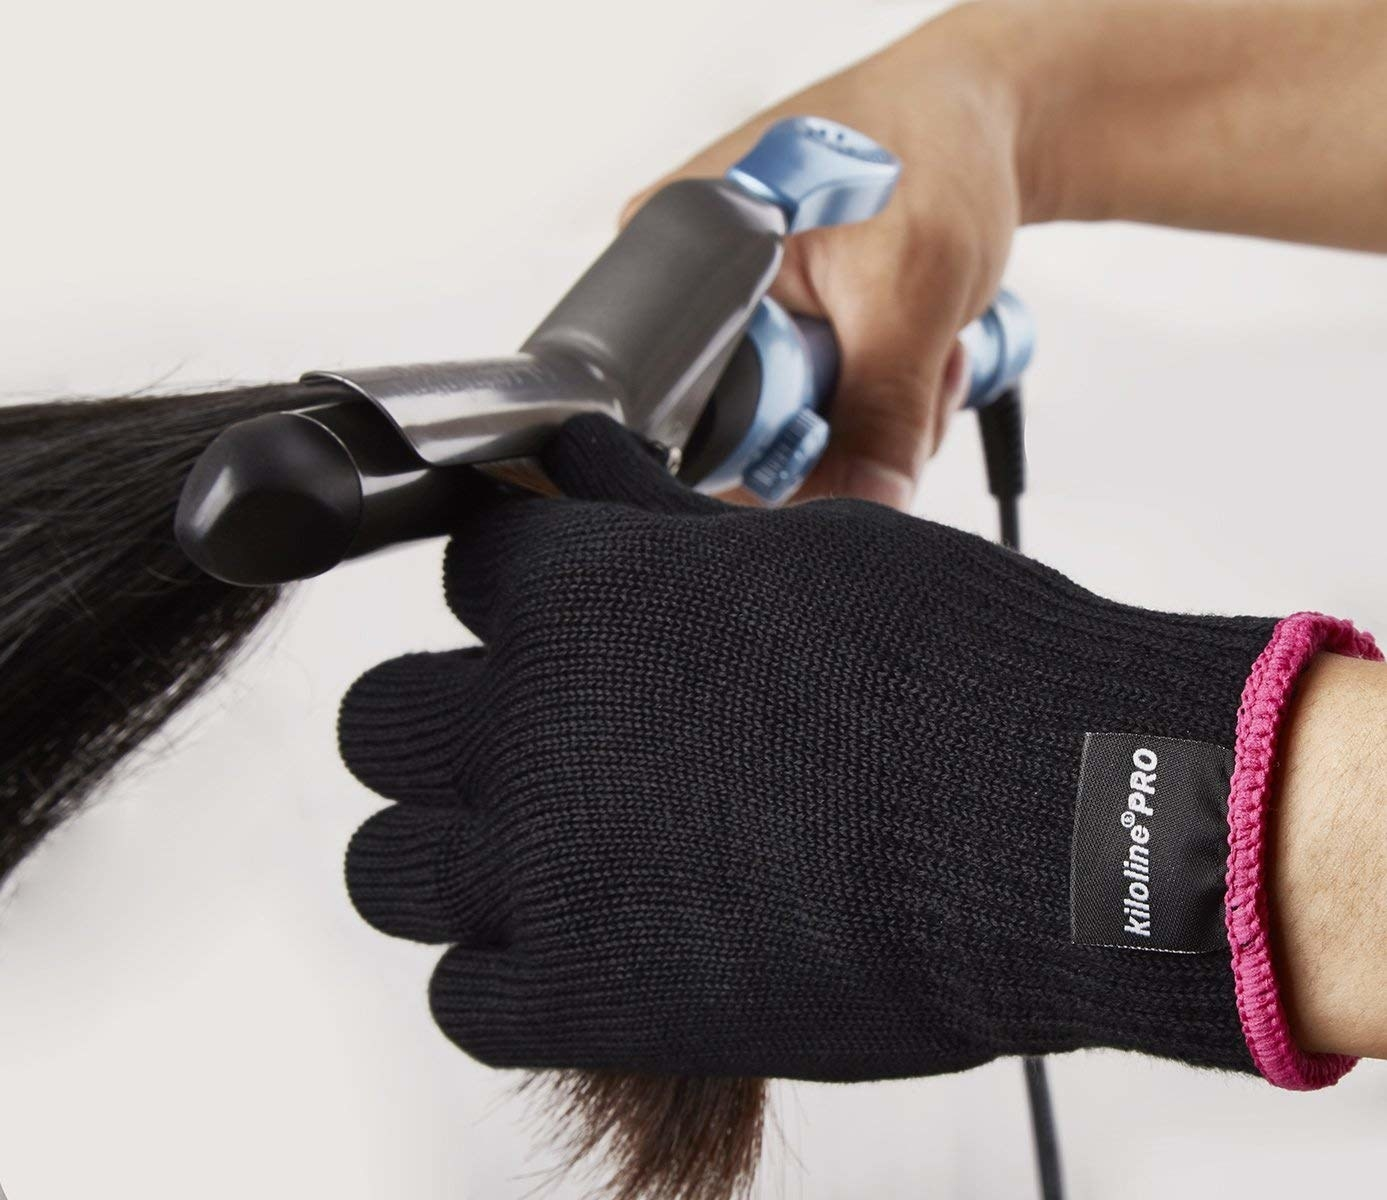 hands wearing the protective gloves holding a strand of hair being curled with a curling iron